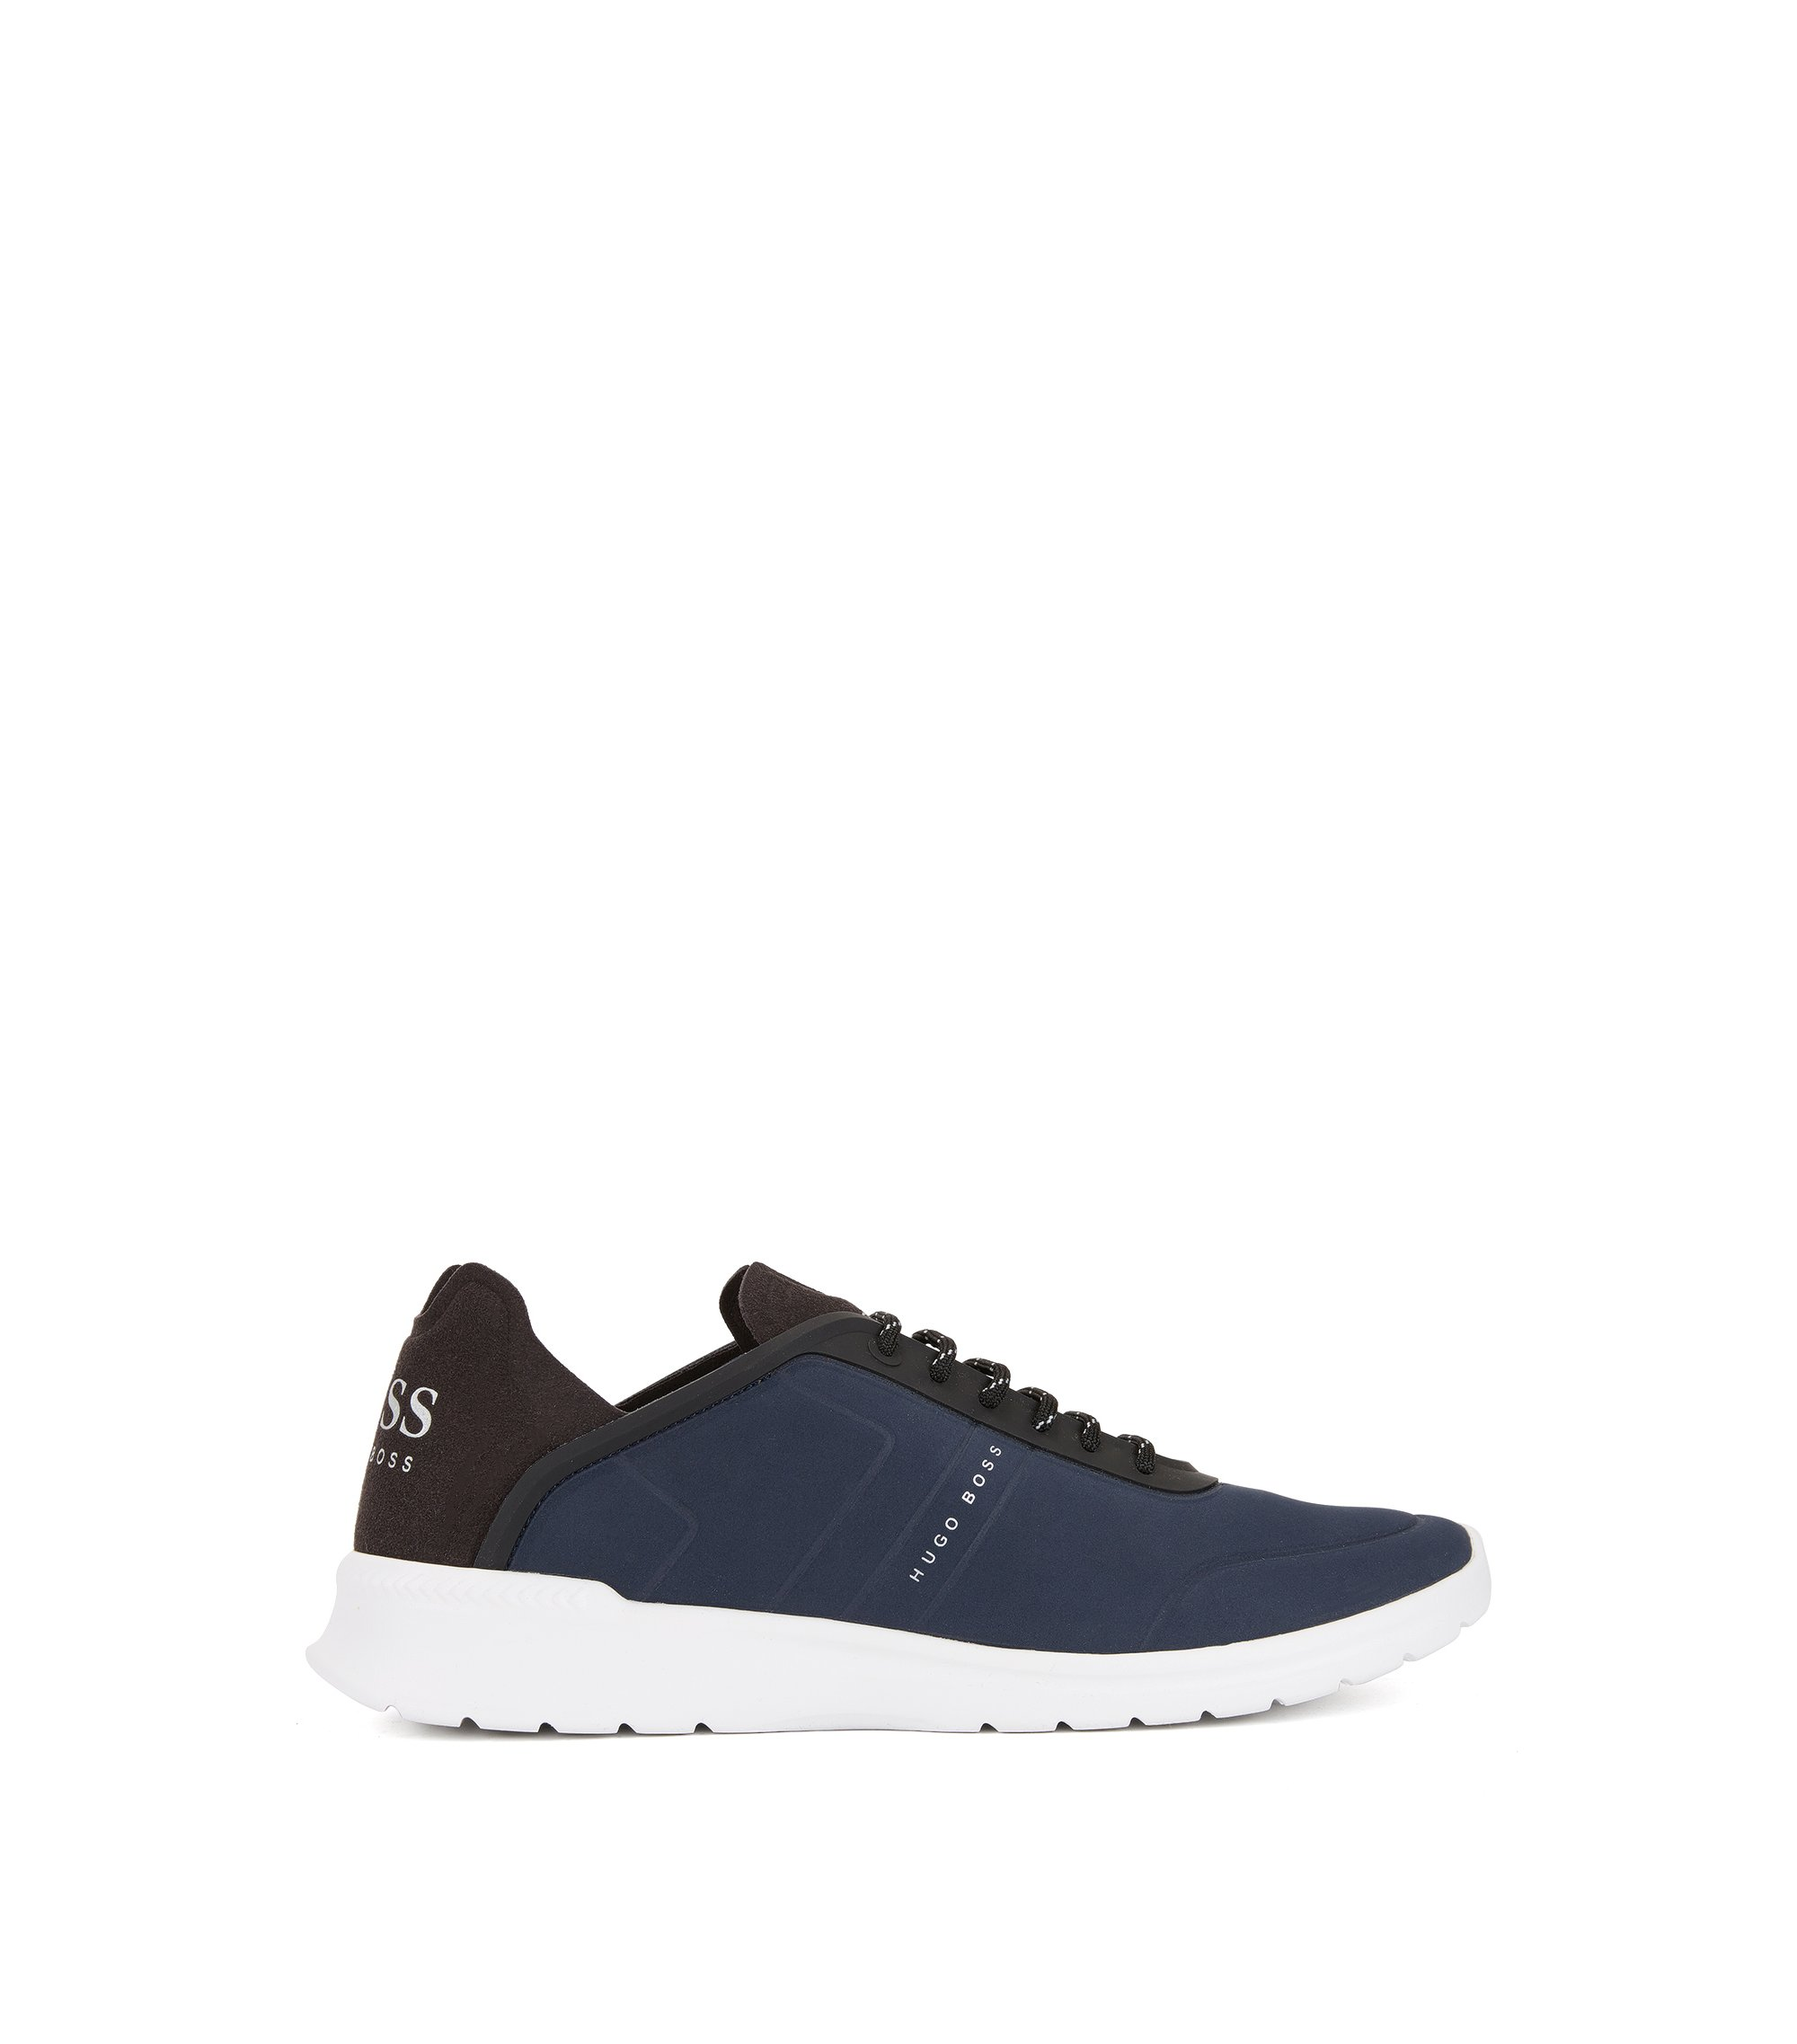 Sneakers low-top stringate con tomaia goffrata effetto nabuk, Blu scuro